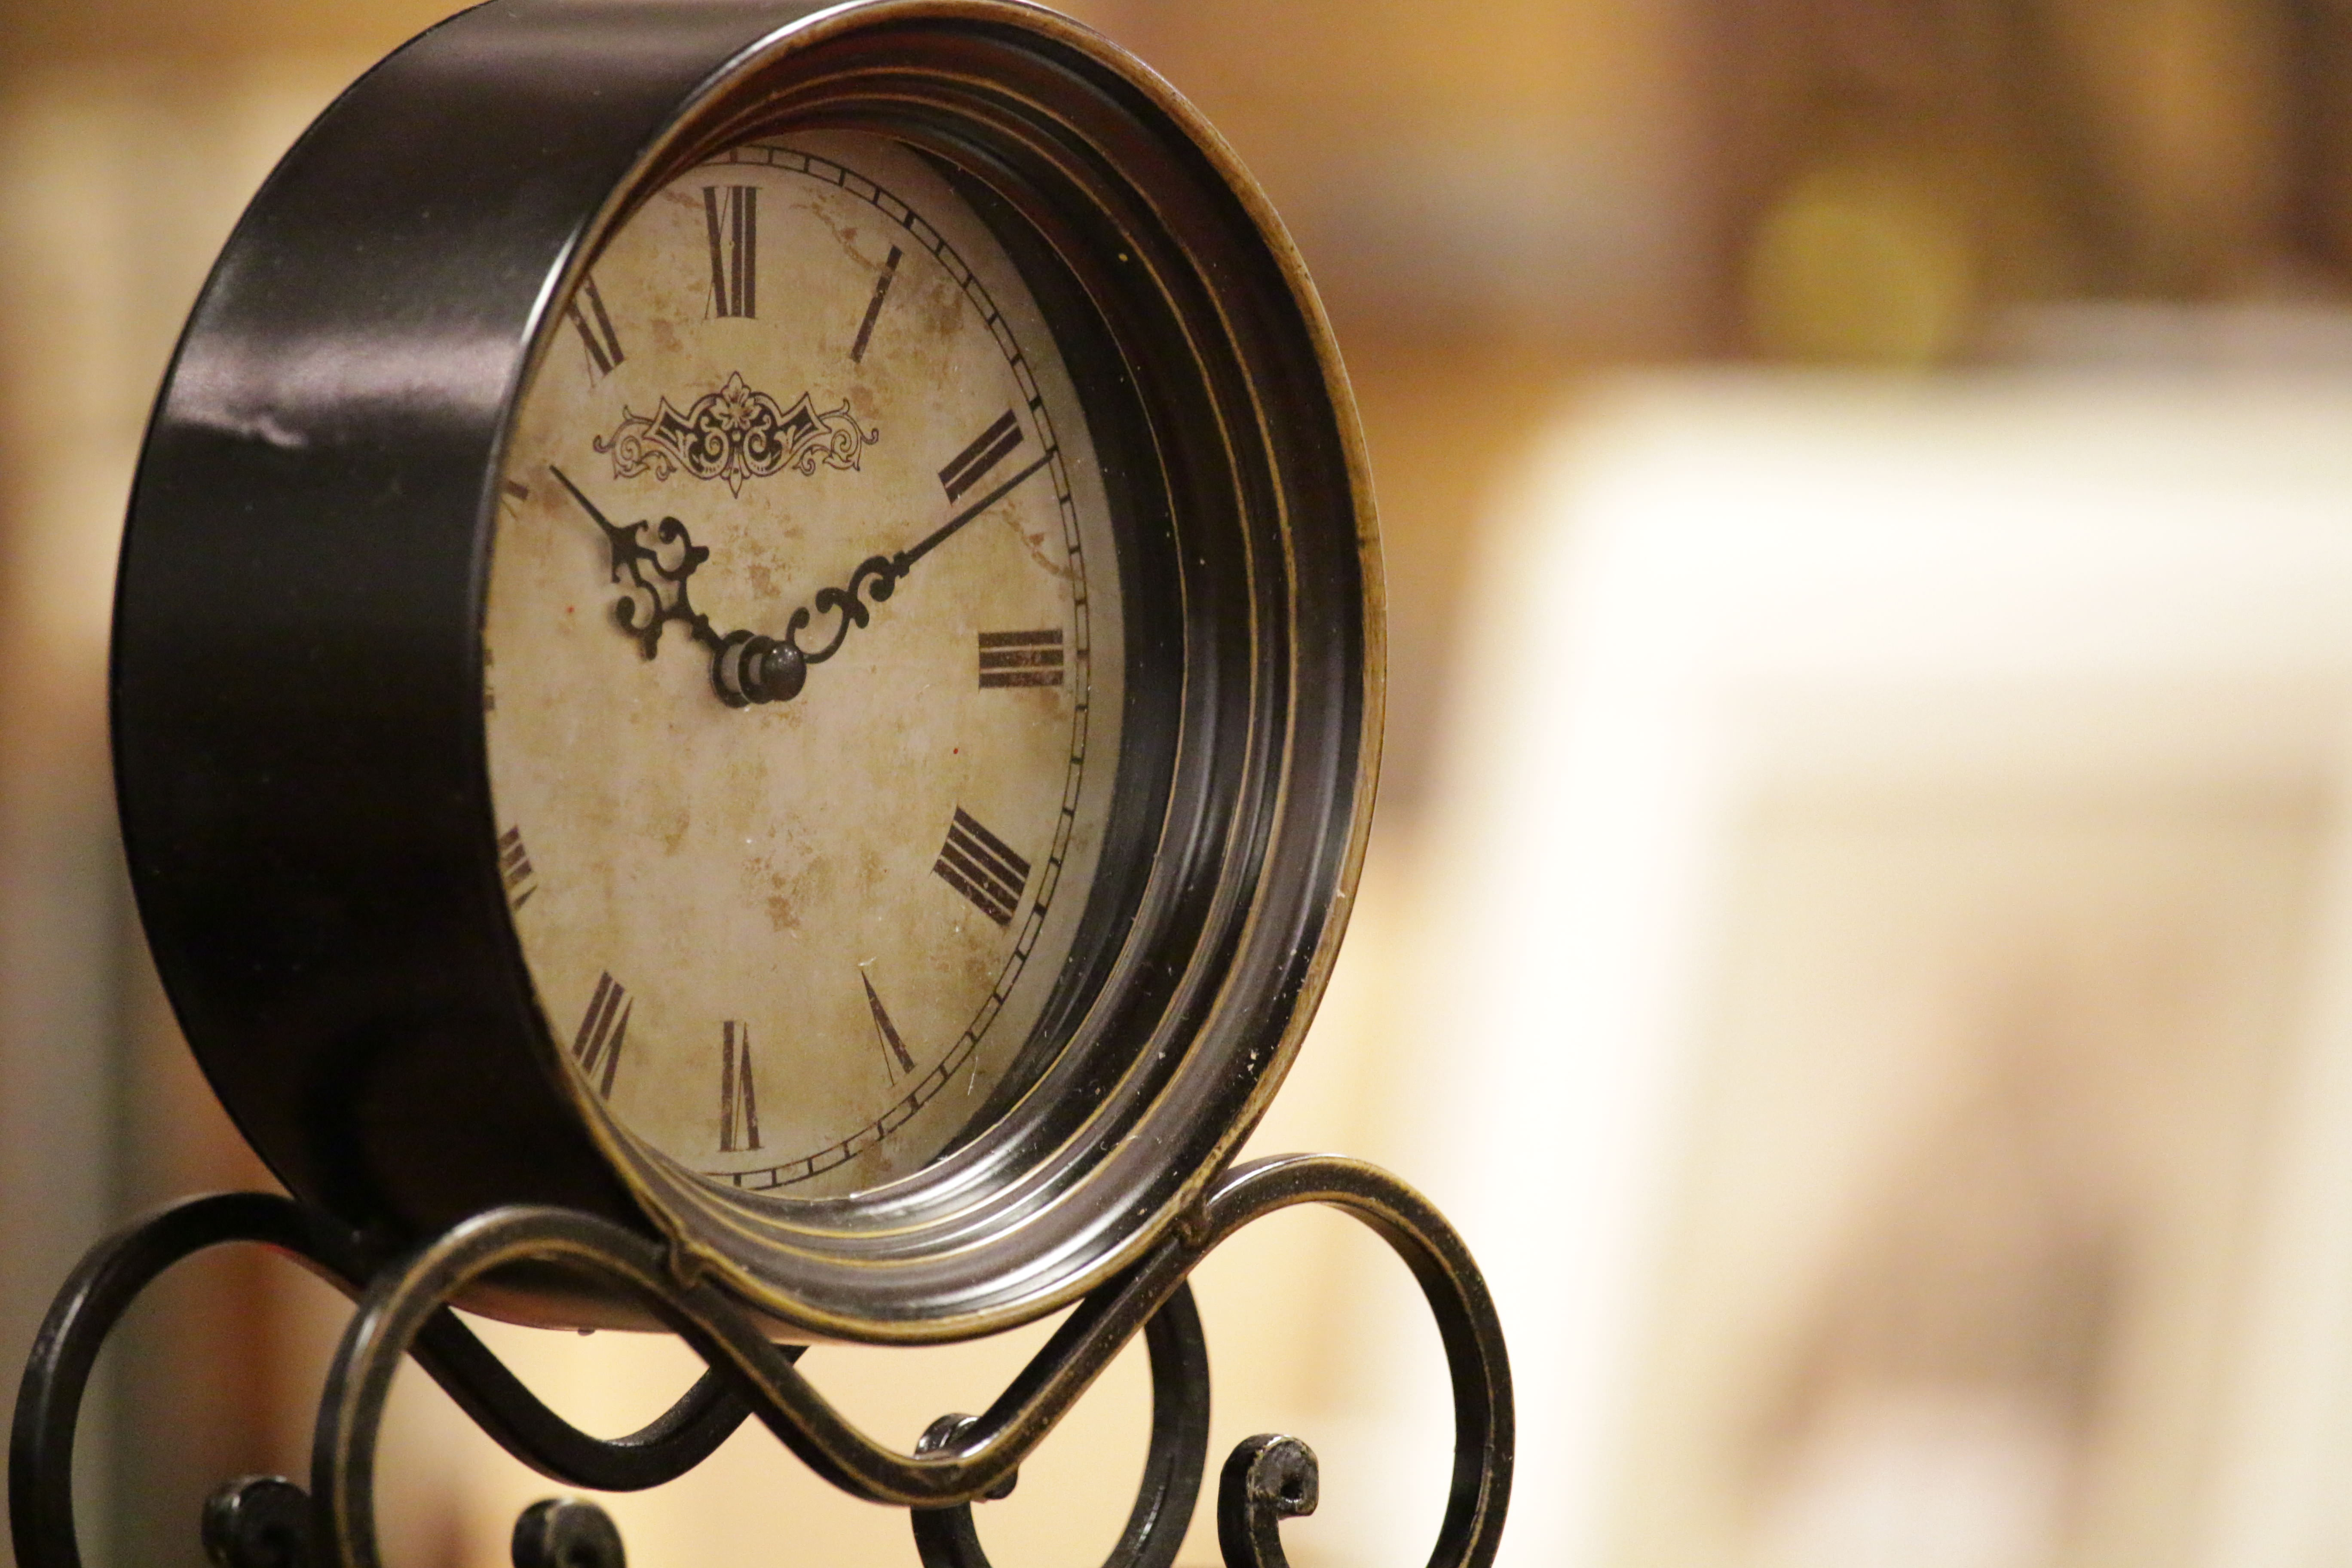 7 Day Checklist When You're Running Out of Time